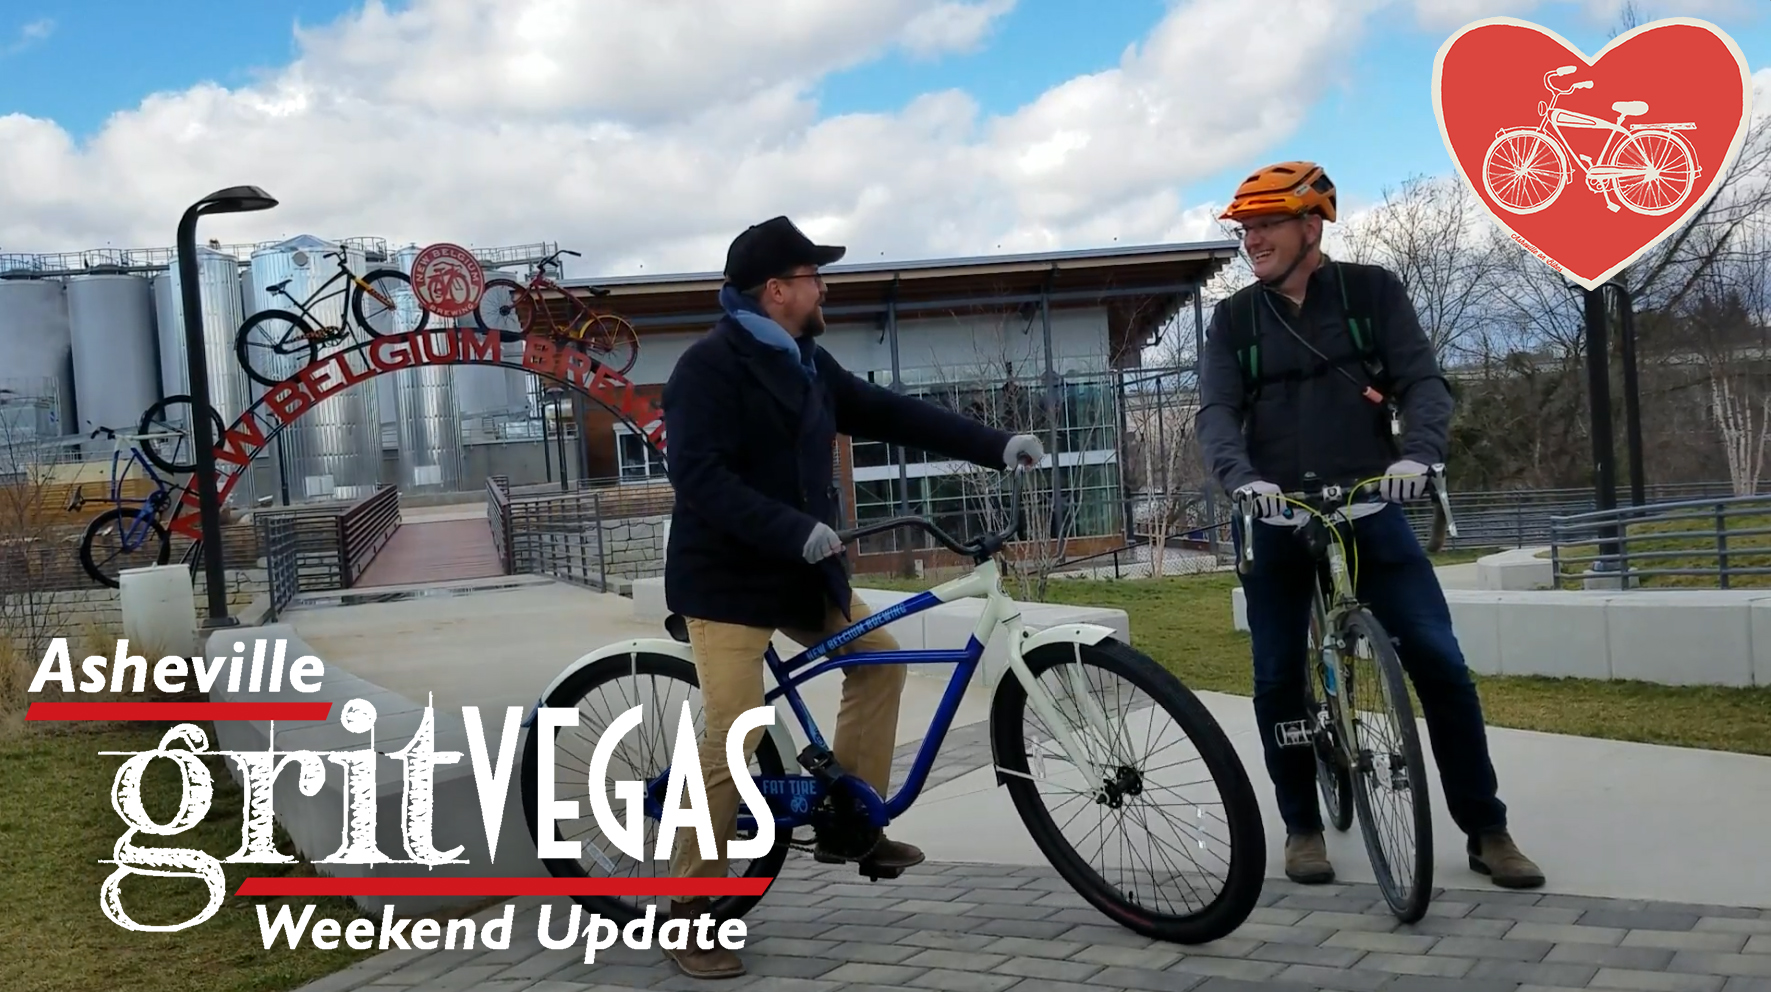 VIDEO: Bike Love 2017 and Asheville weekend events roundup